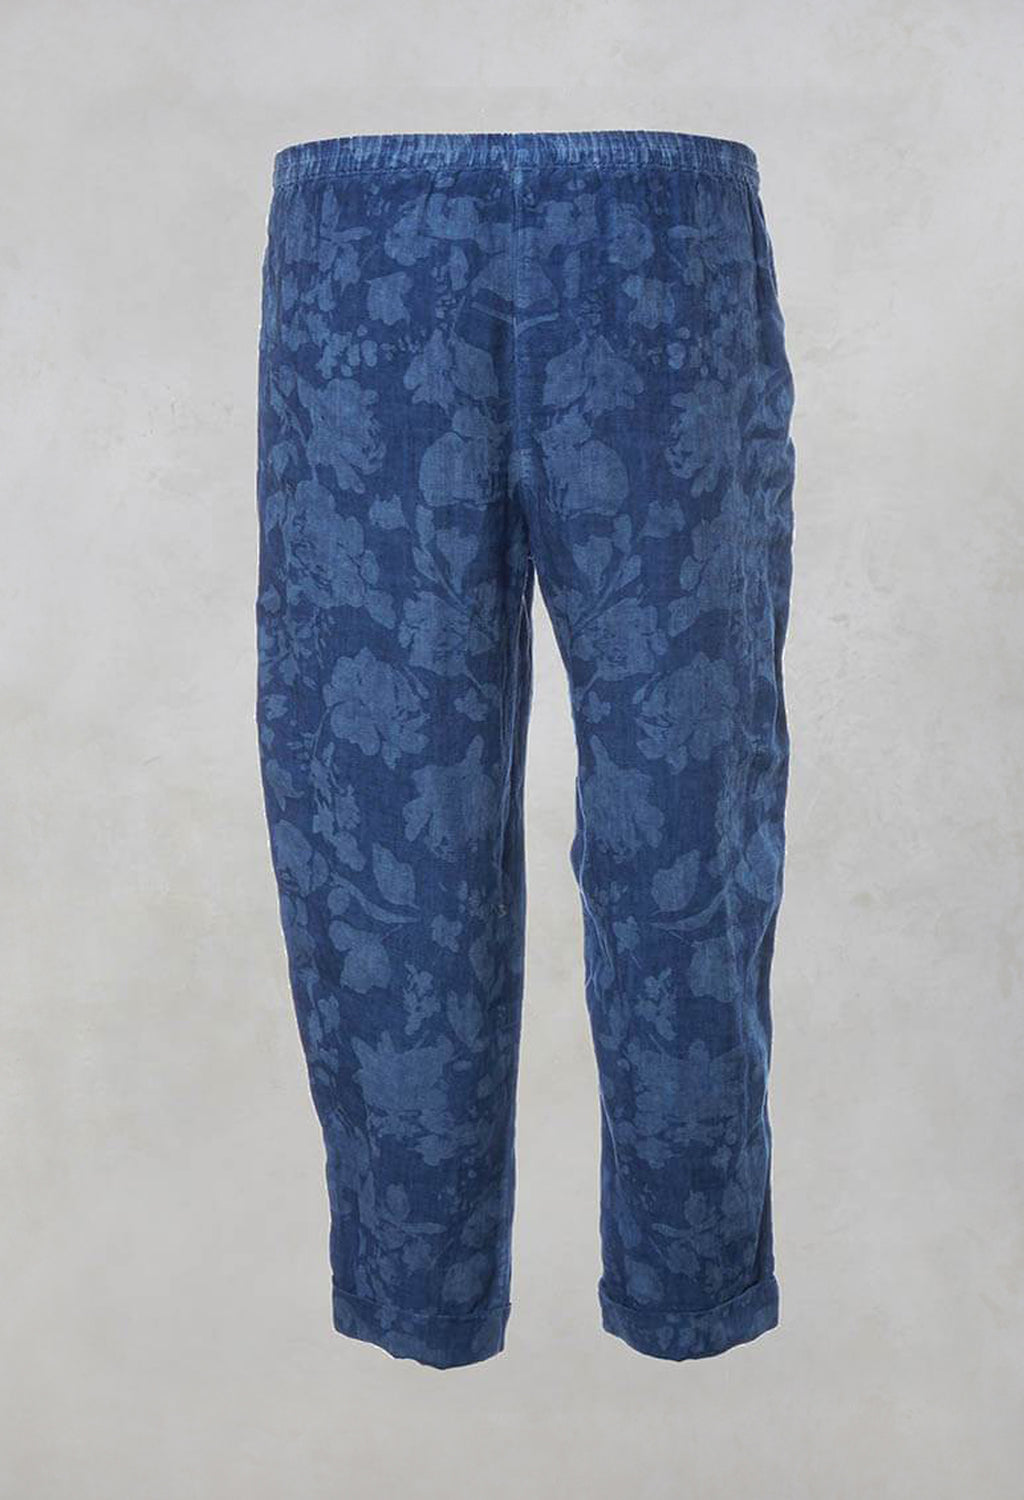 Printed Cropped Trousers with Pockets in indigo